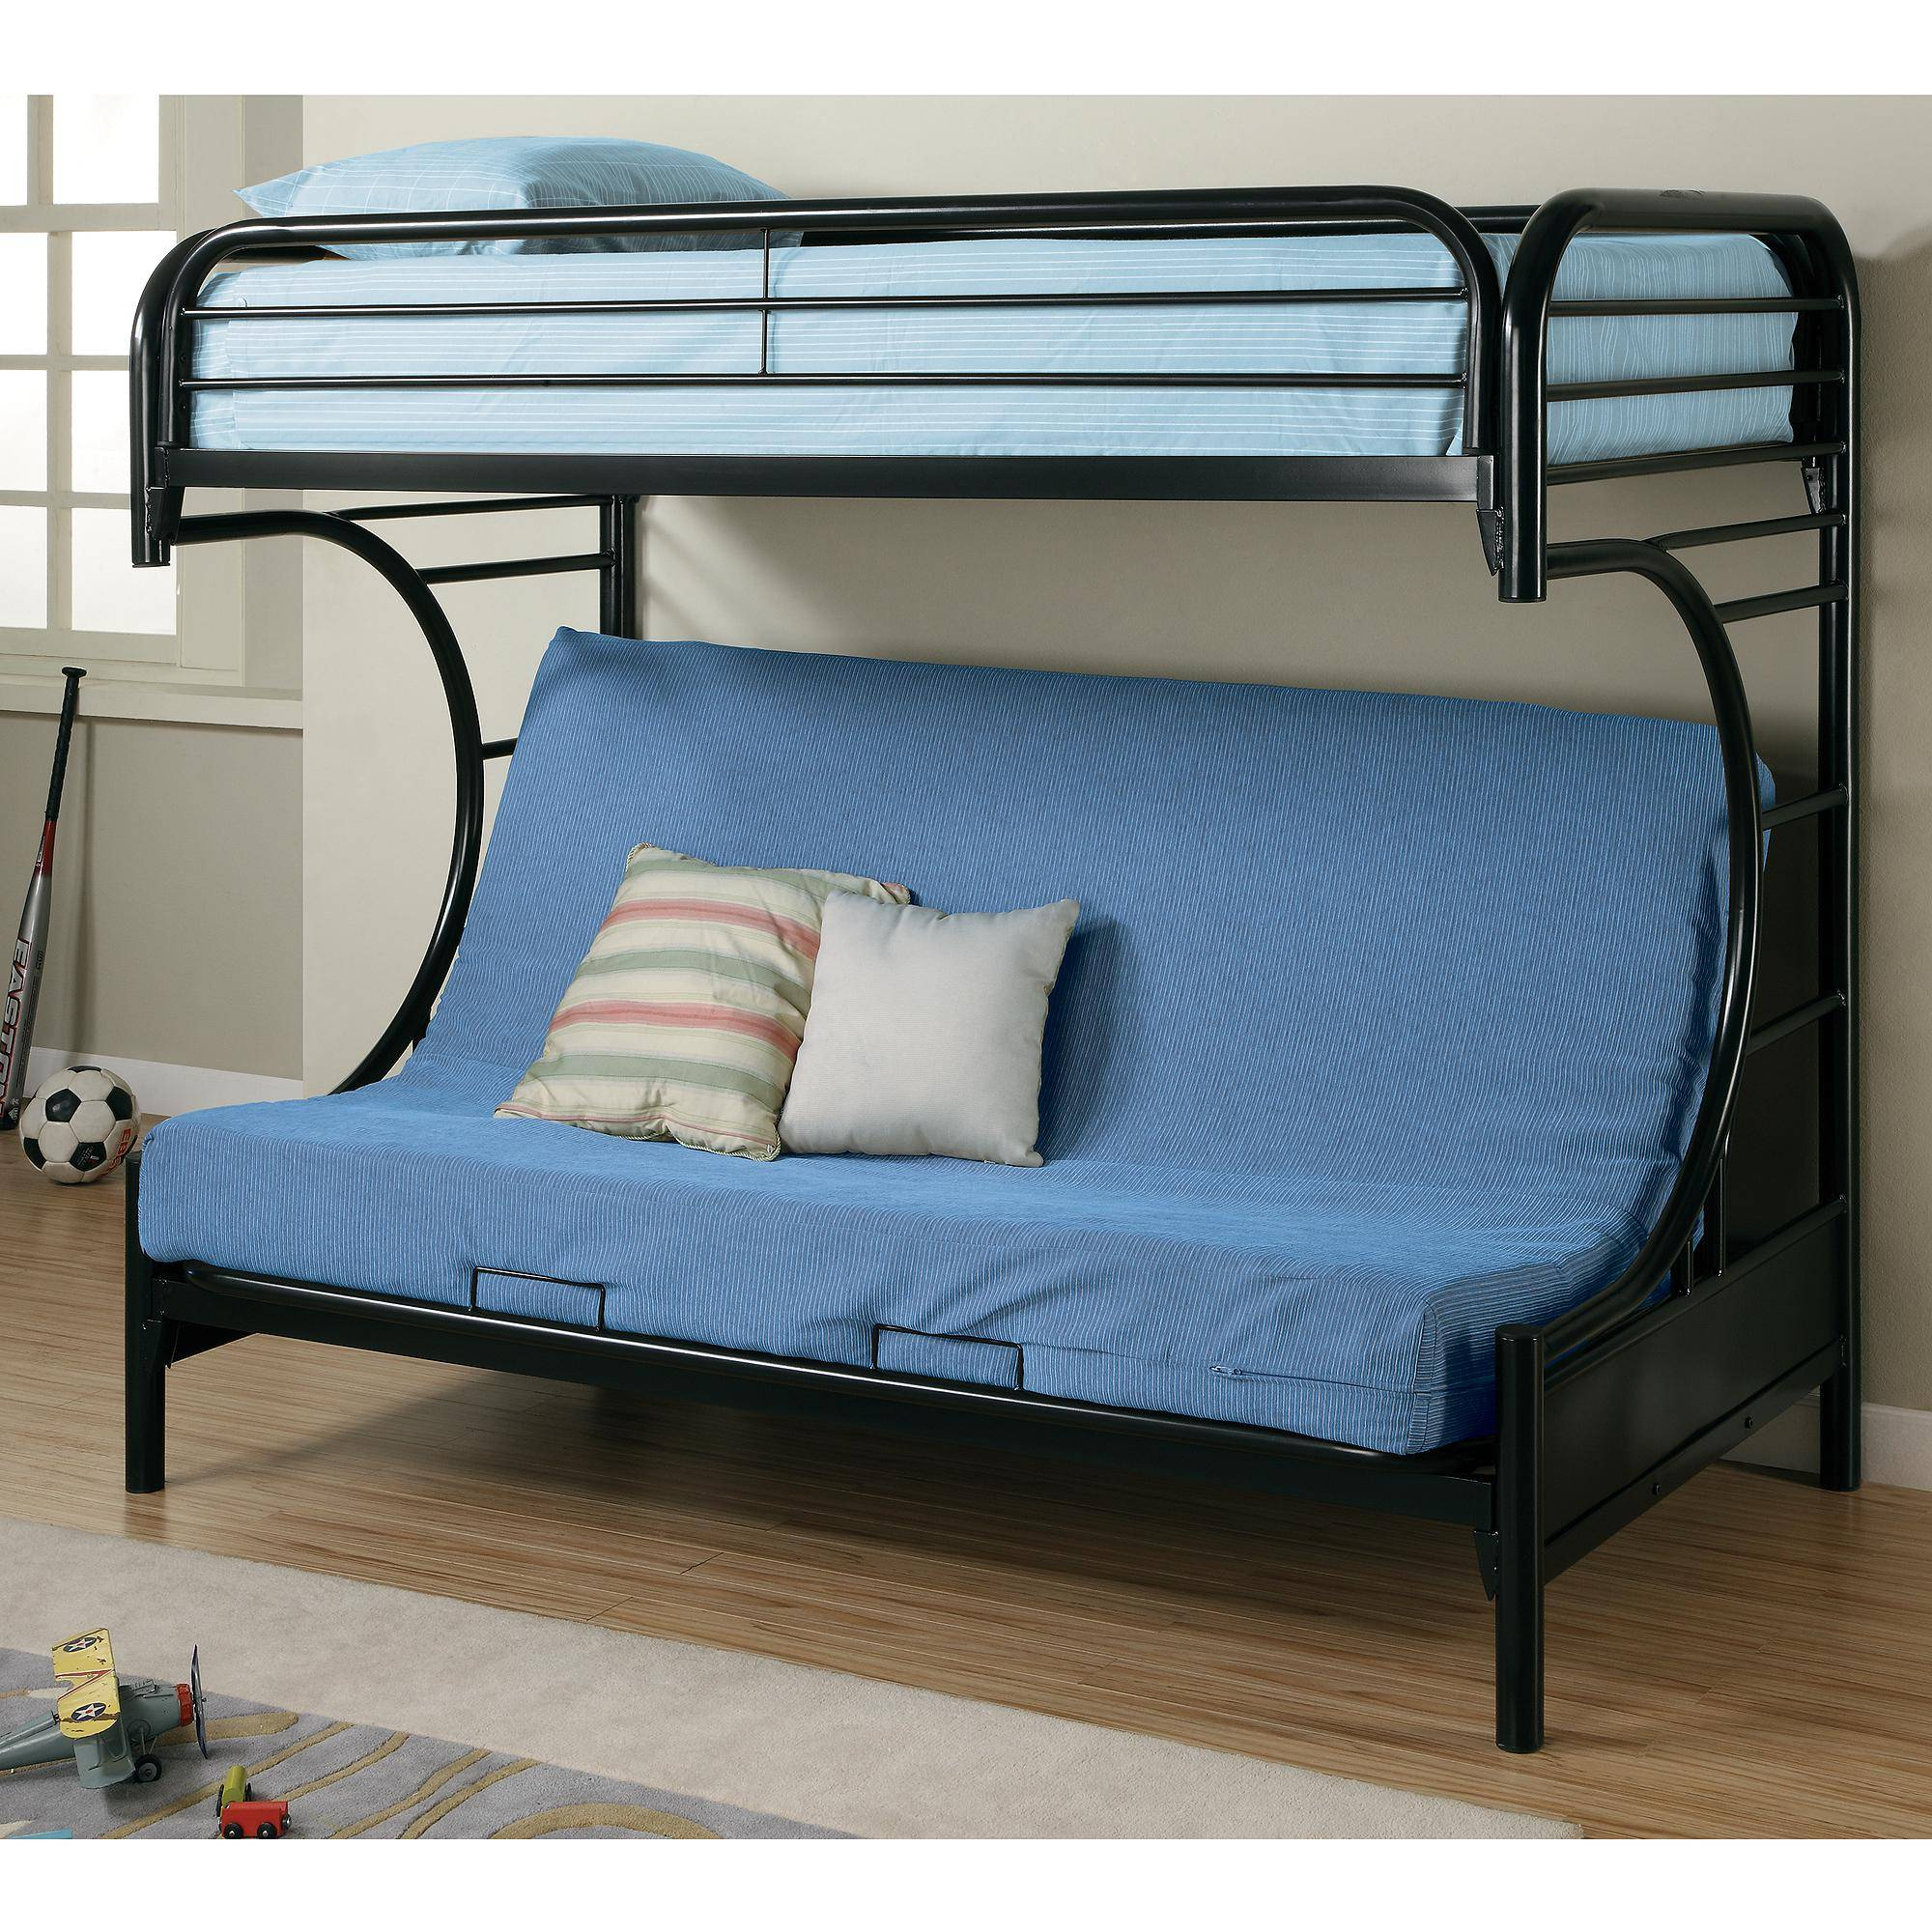 Bunk Bed Couch For Rv Convertible With